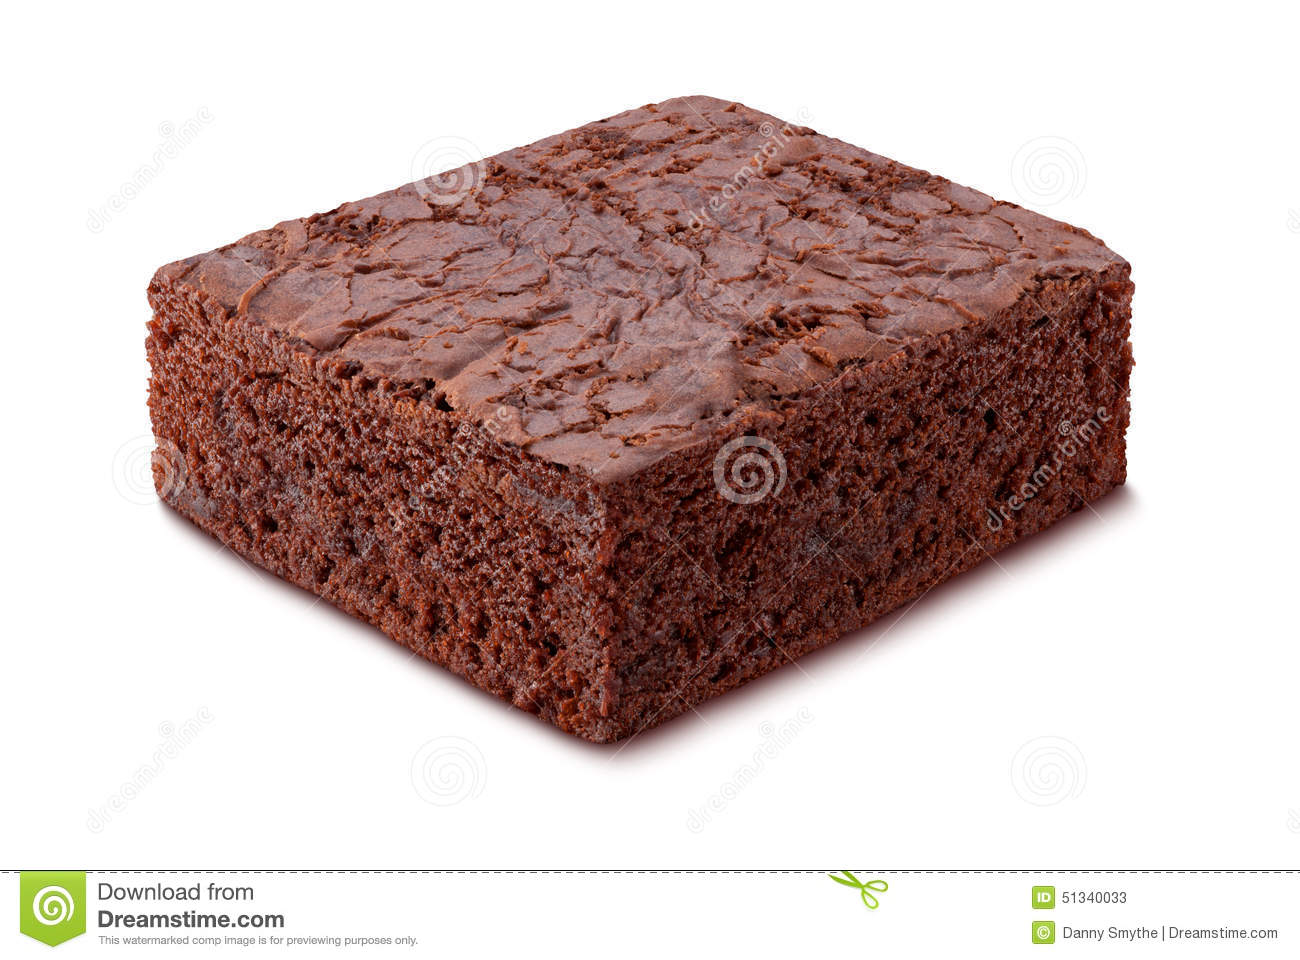 Brownies clipart transparent background. Brownie pencil and in